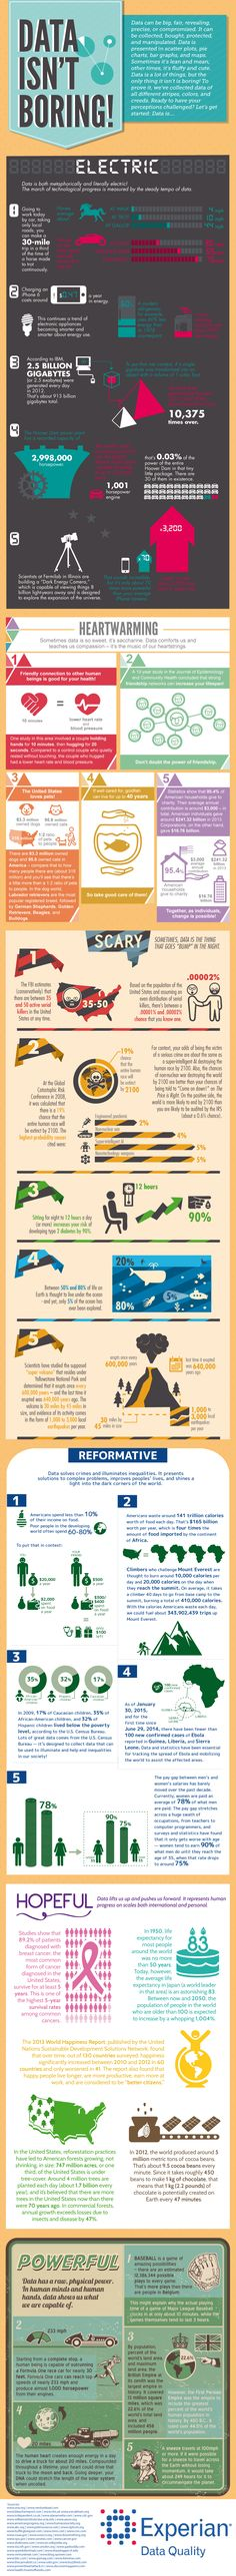 Data Isn't Boring! #infographic #Data #Science